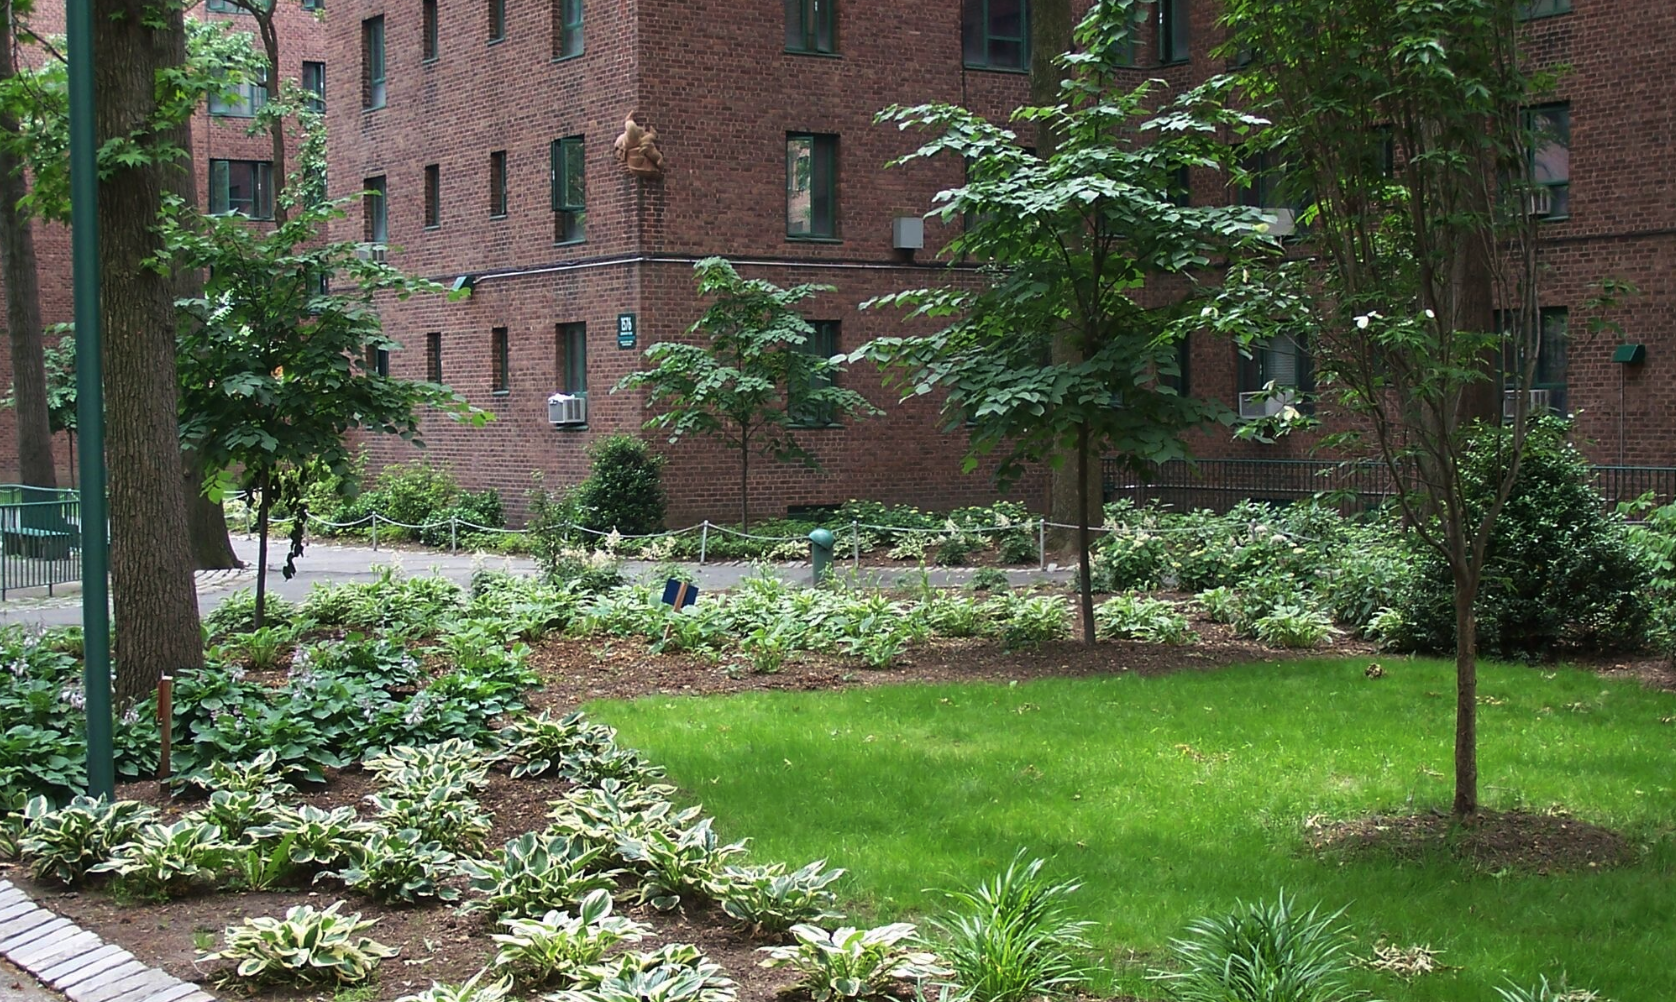 Copy of landscape design stone retaining wall for apartment complex Westchester County, NY